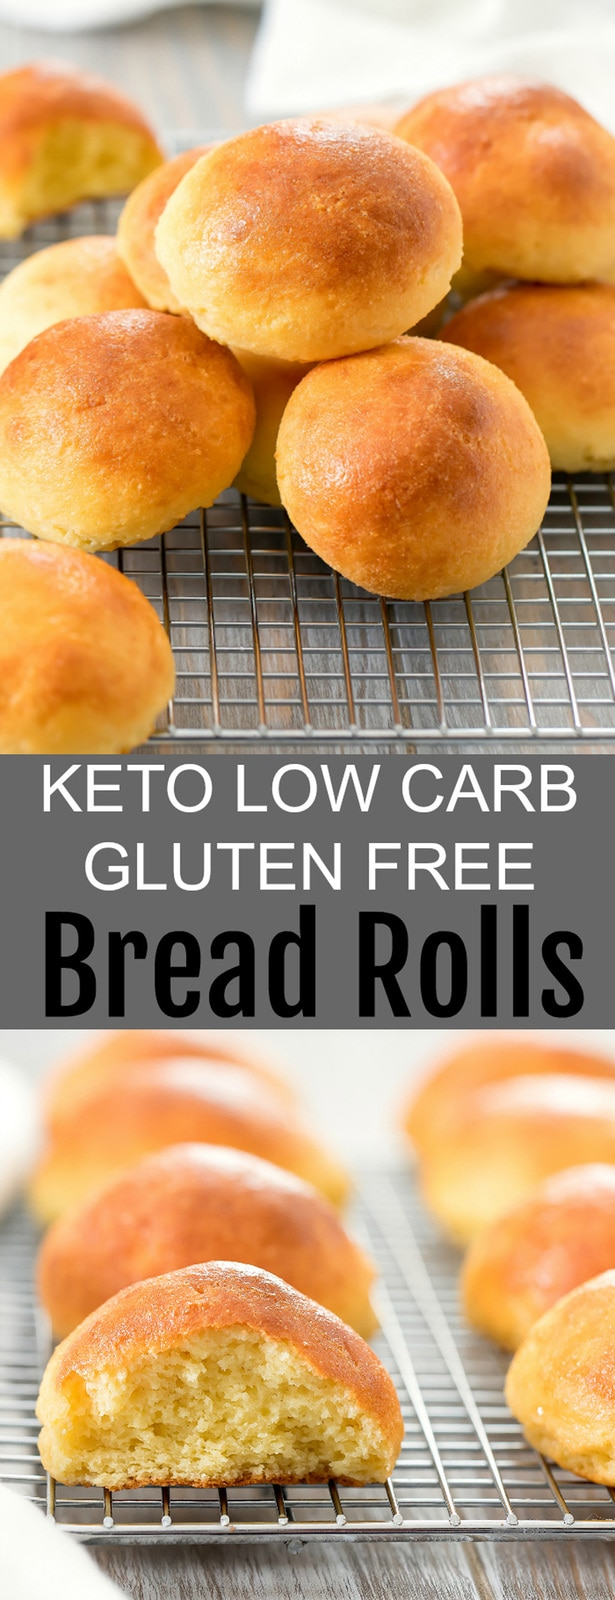 Keto Bread Rolls - Kirbie's Cravings